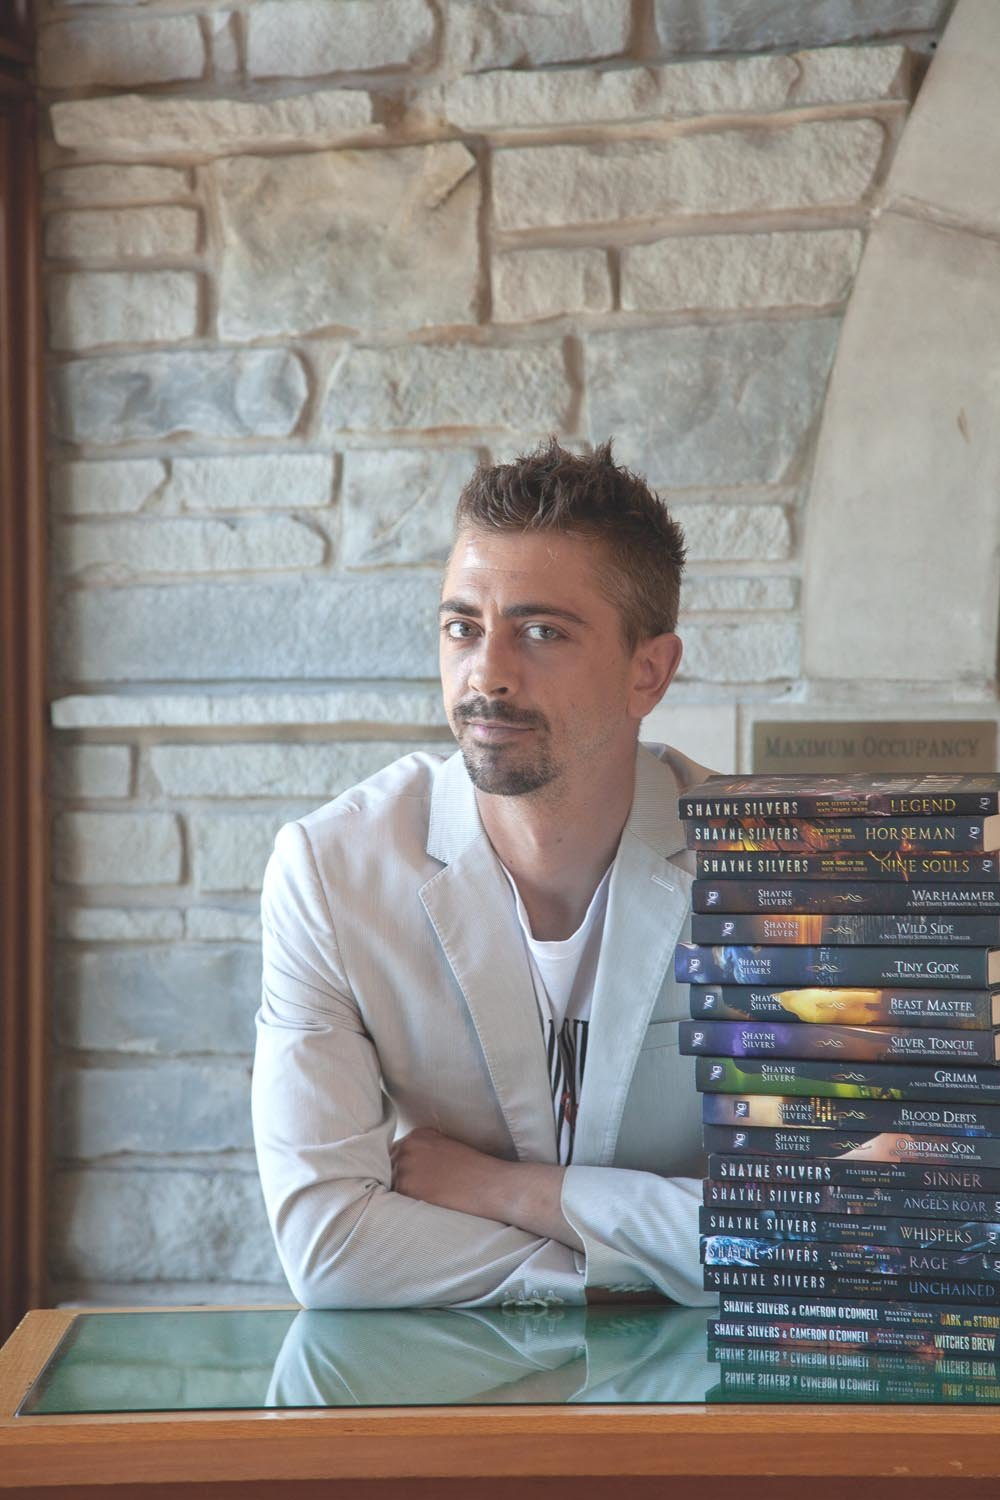 Author Shayne Silvers plans to self-publish nearly 20 books this year.